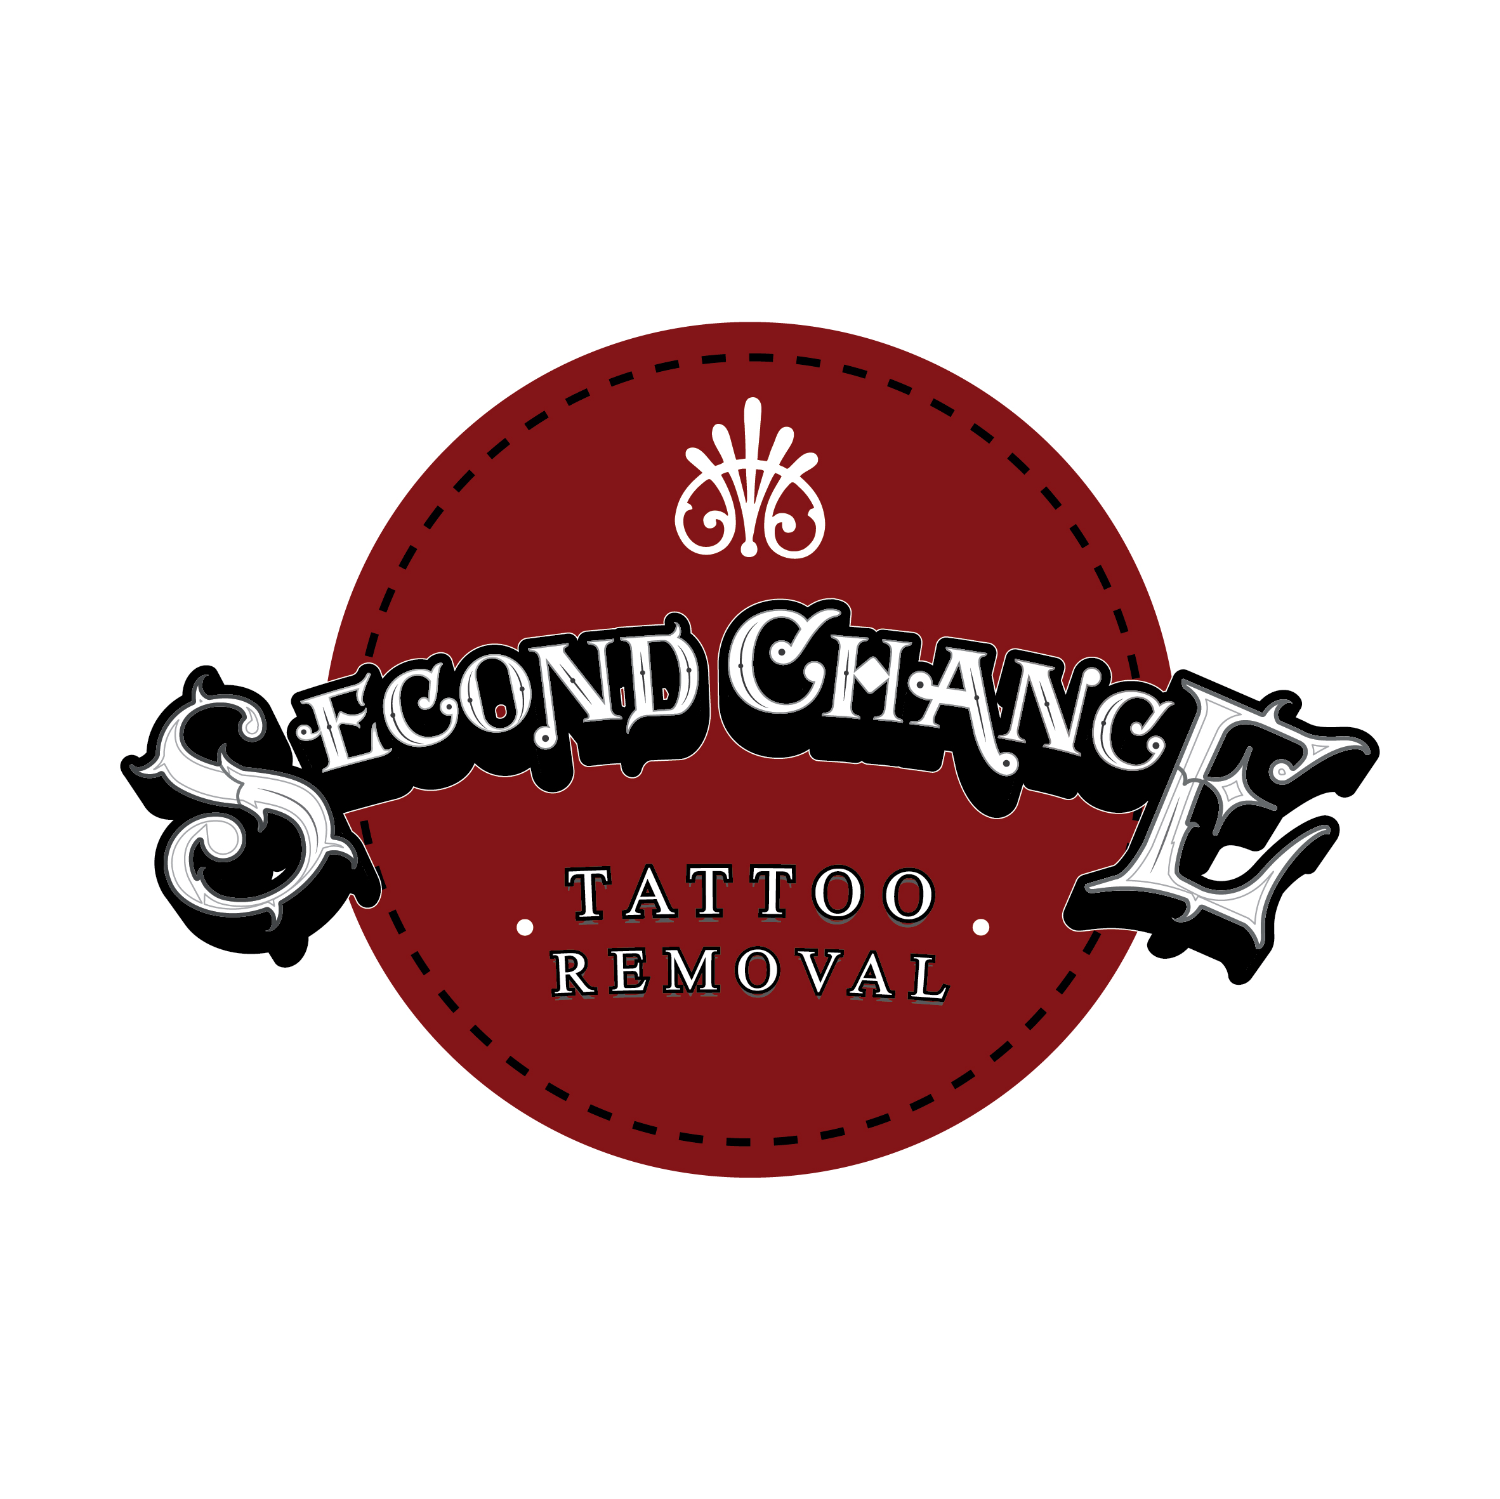 Second Chance Tattoo Removal